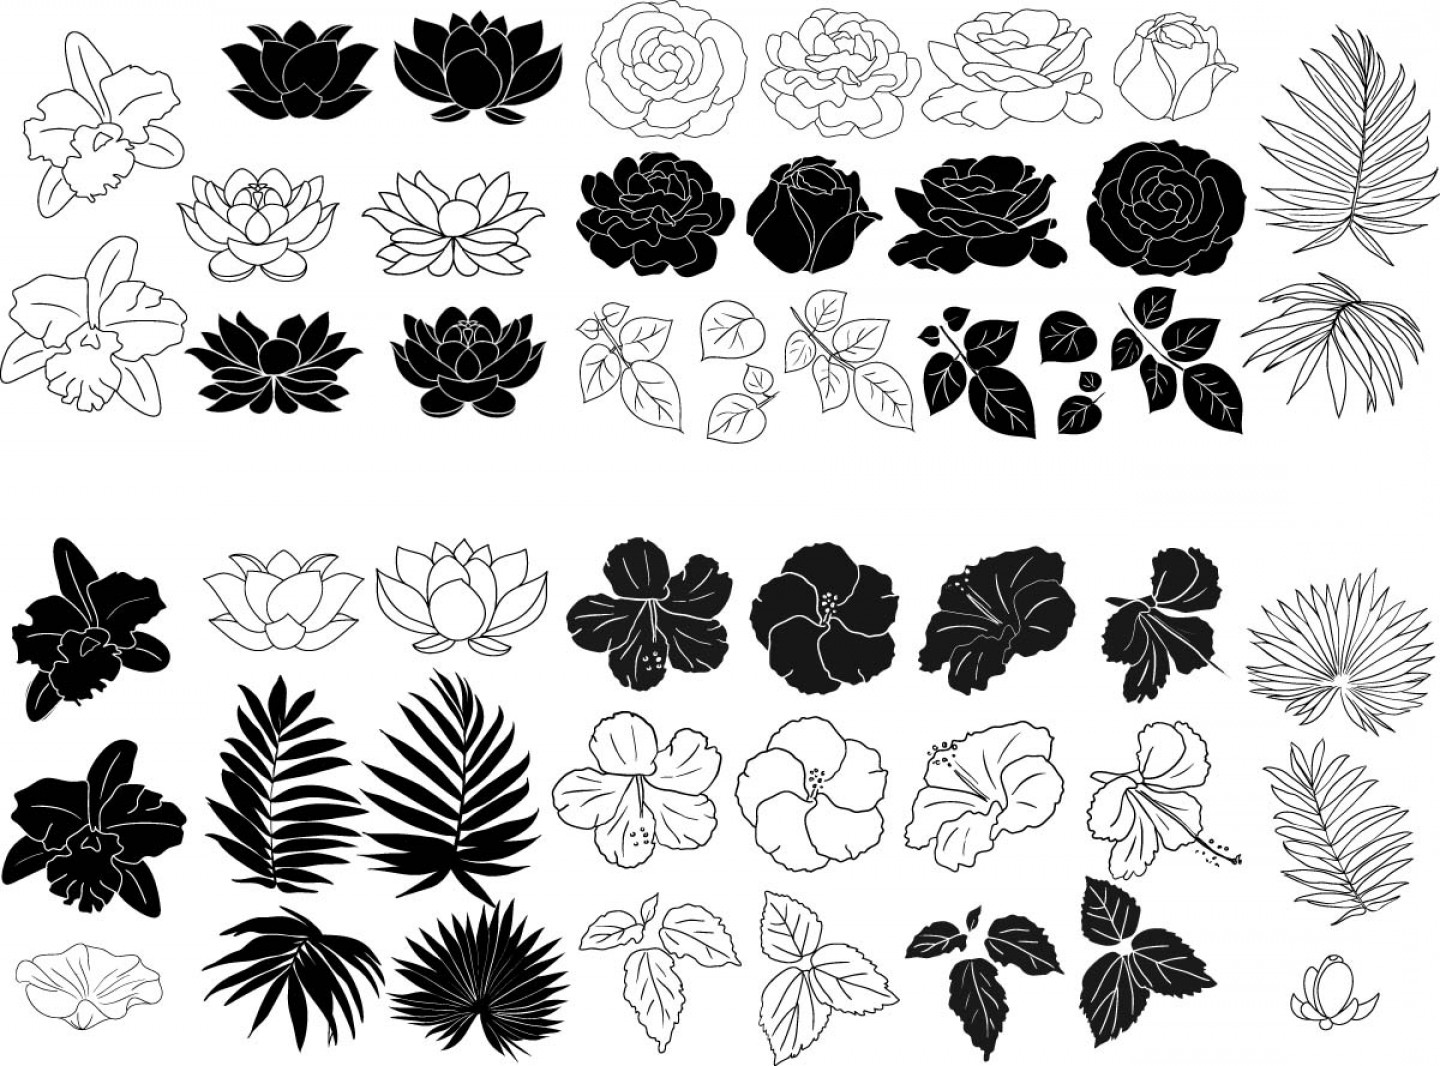 Flower Elements Vector: Flowers And Leaves Elements Vector Set